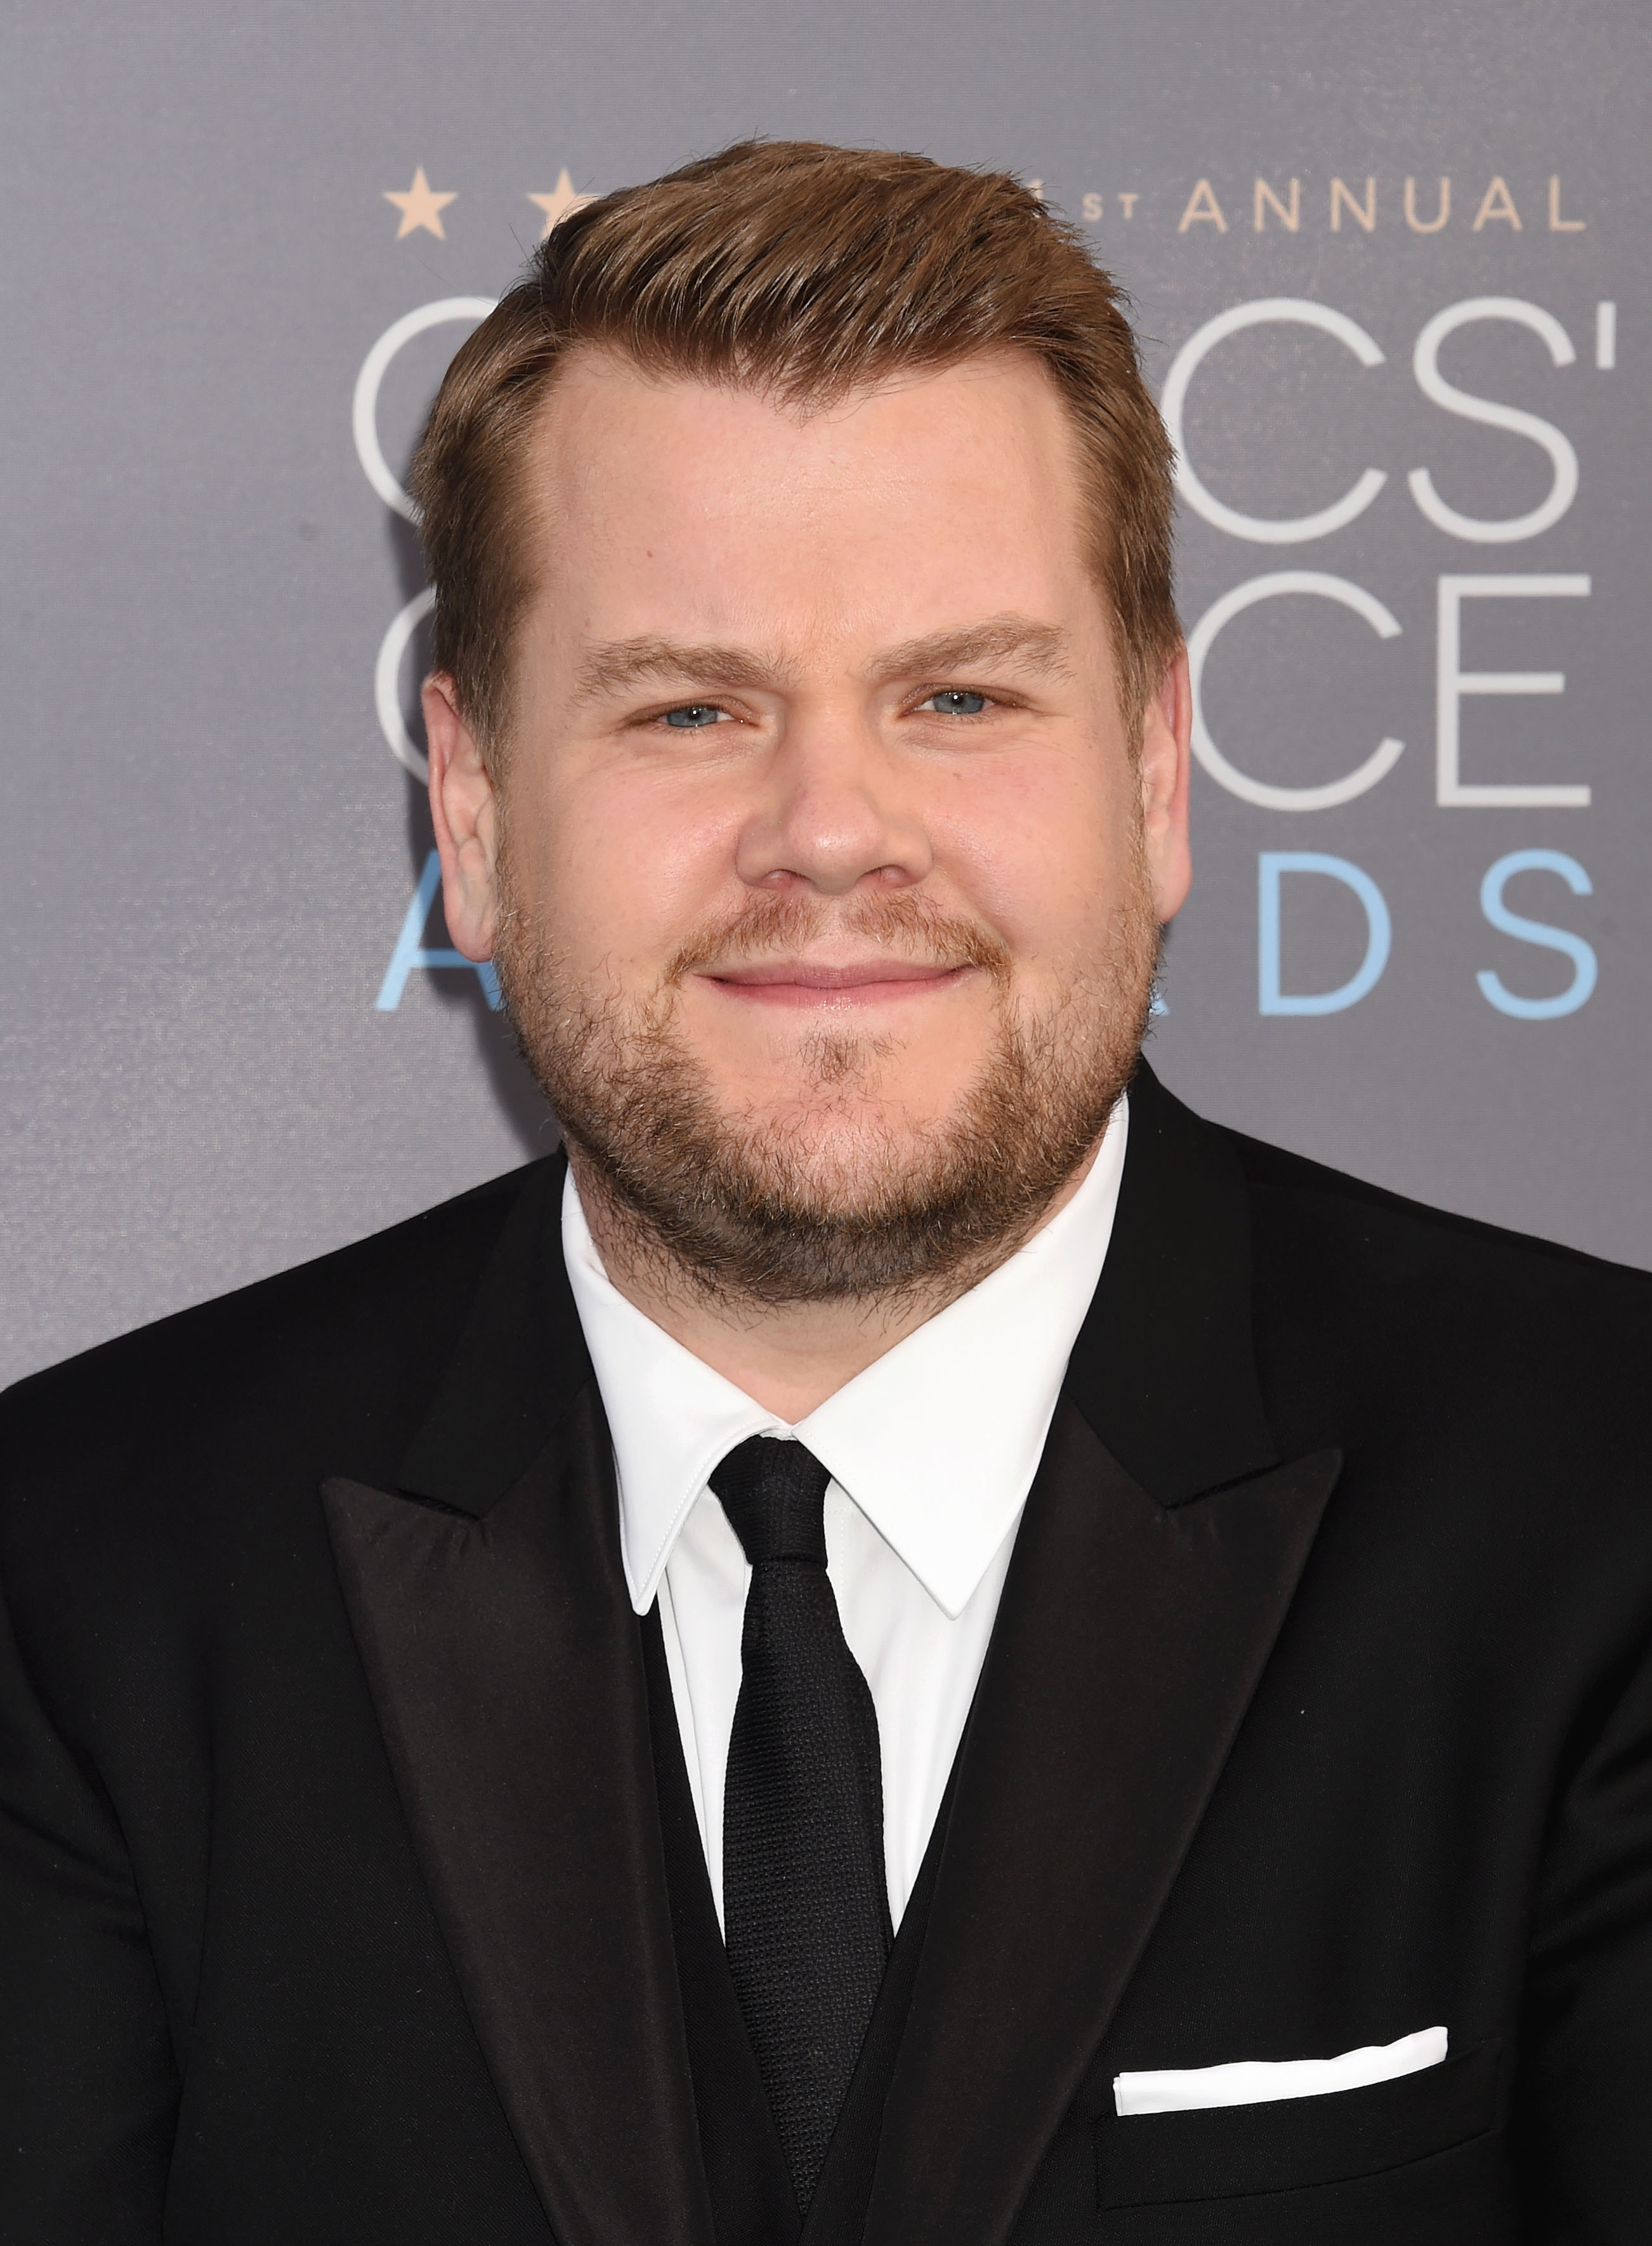 Actor/TV persoanlity James Corden attends the 21st Annual Critics' Choice Awards at Barker Hangar on January 17, 2016 in Santa Monica, California.